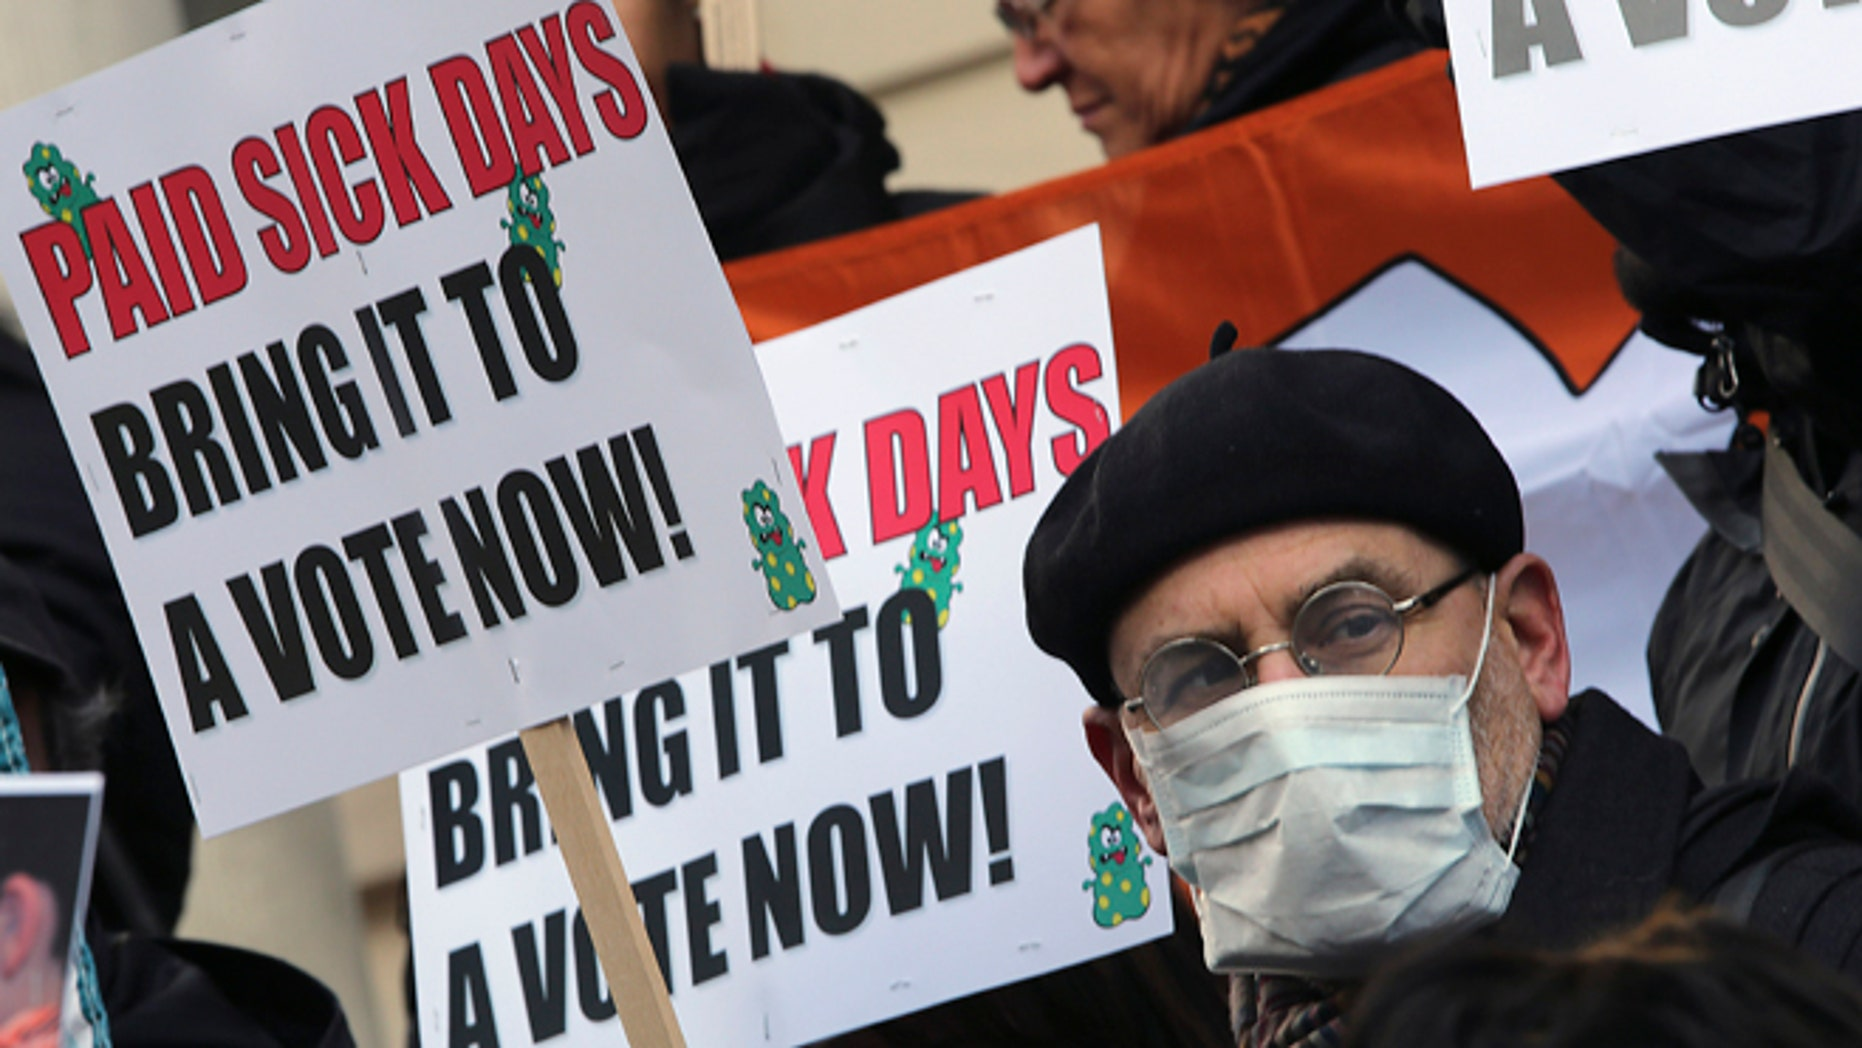 Jan. 18 2013 : In this photo, activists hold signs during a rally at New York's City Hall to call for immediate action on paid sick days legislation in light of the continued spread of the flu.